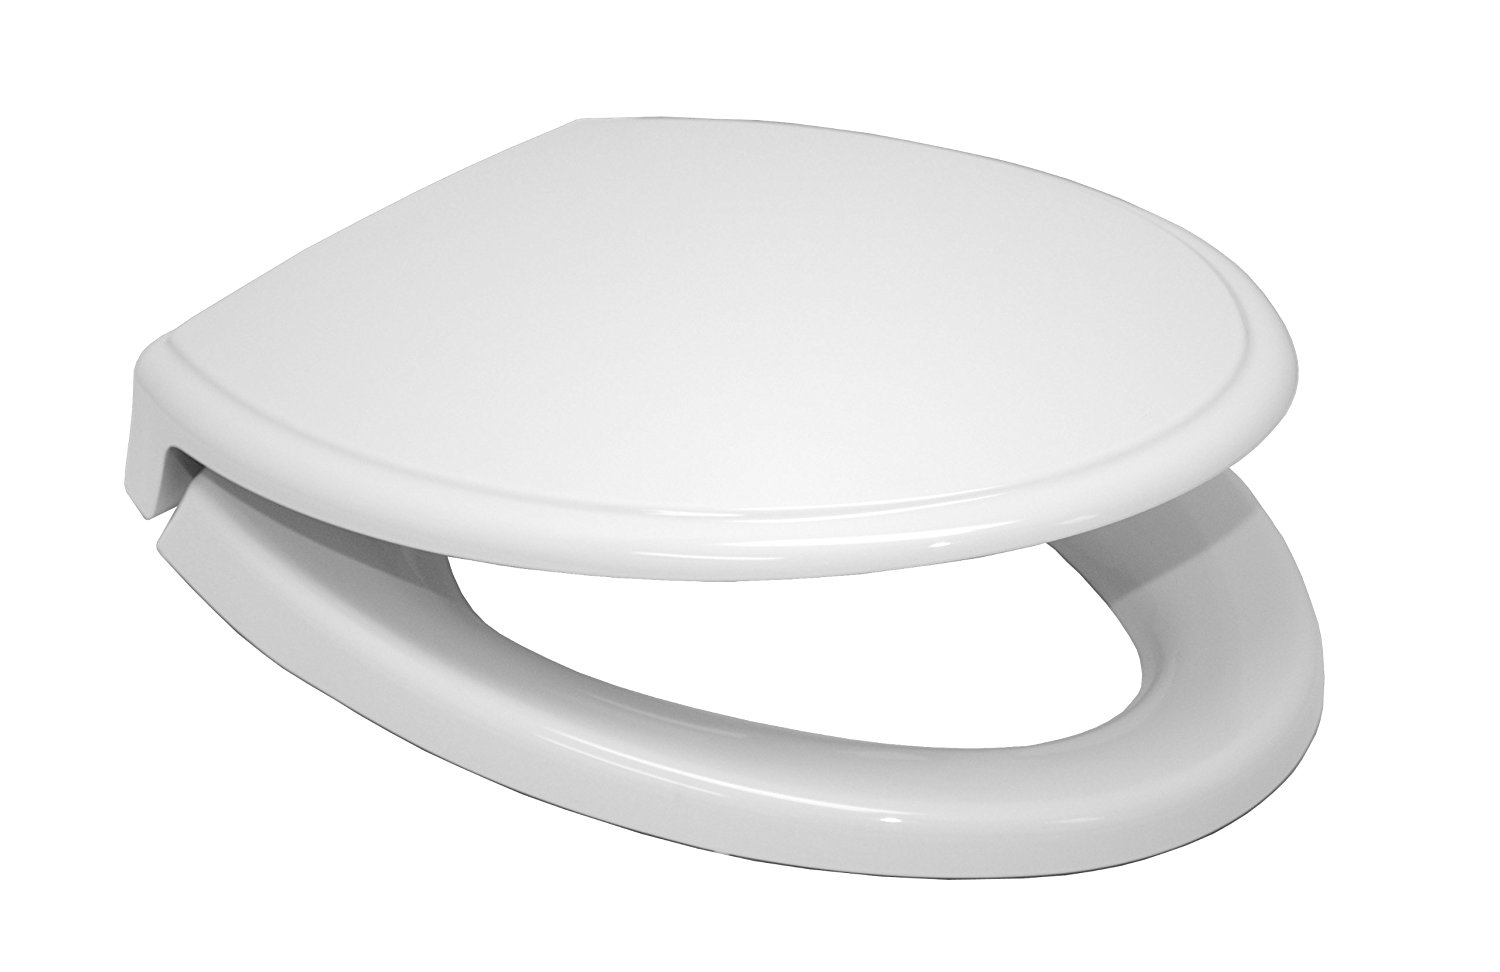 Toto Traditional SoftClose Elongated Toilet Seat – 6 Colors Available, Resistant to Chemicals